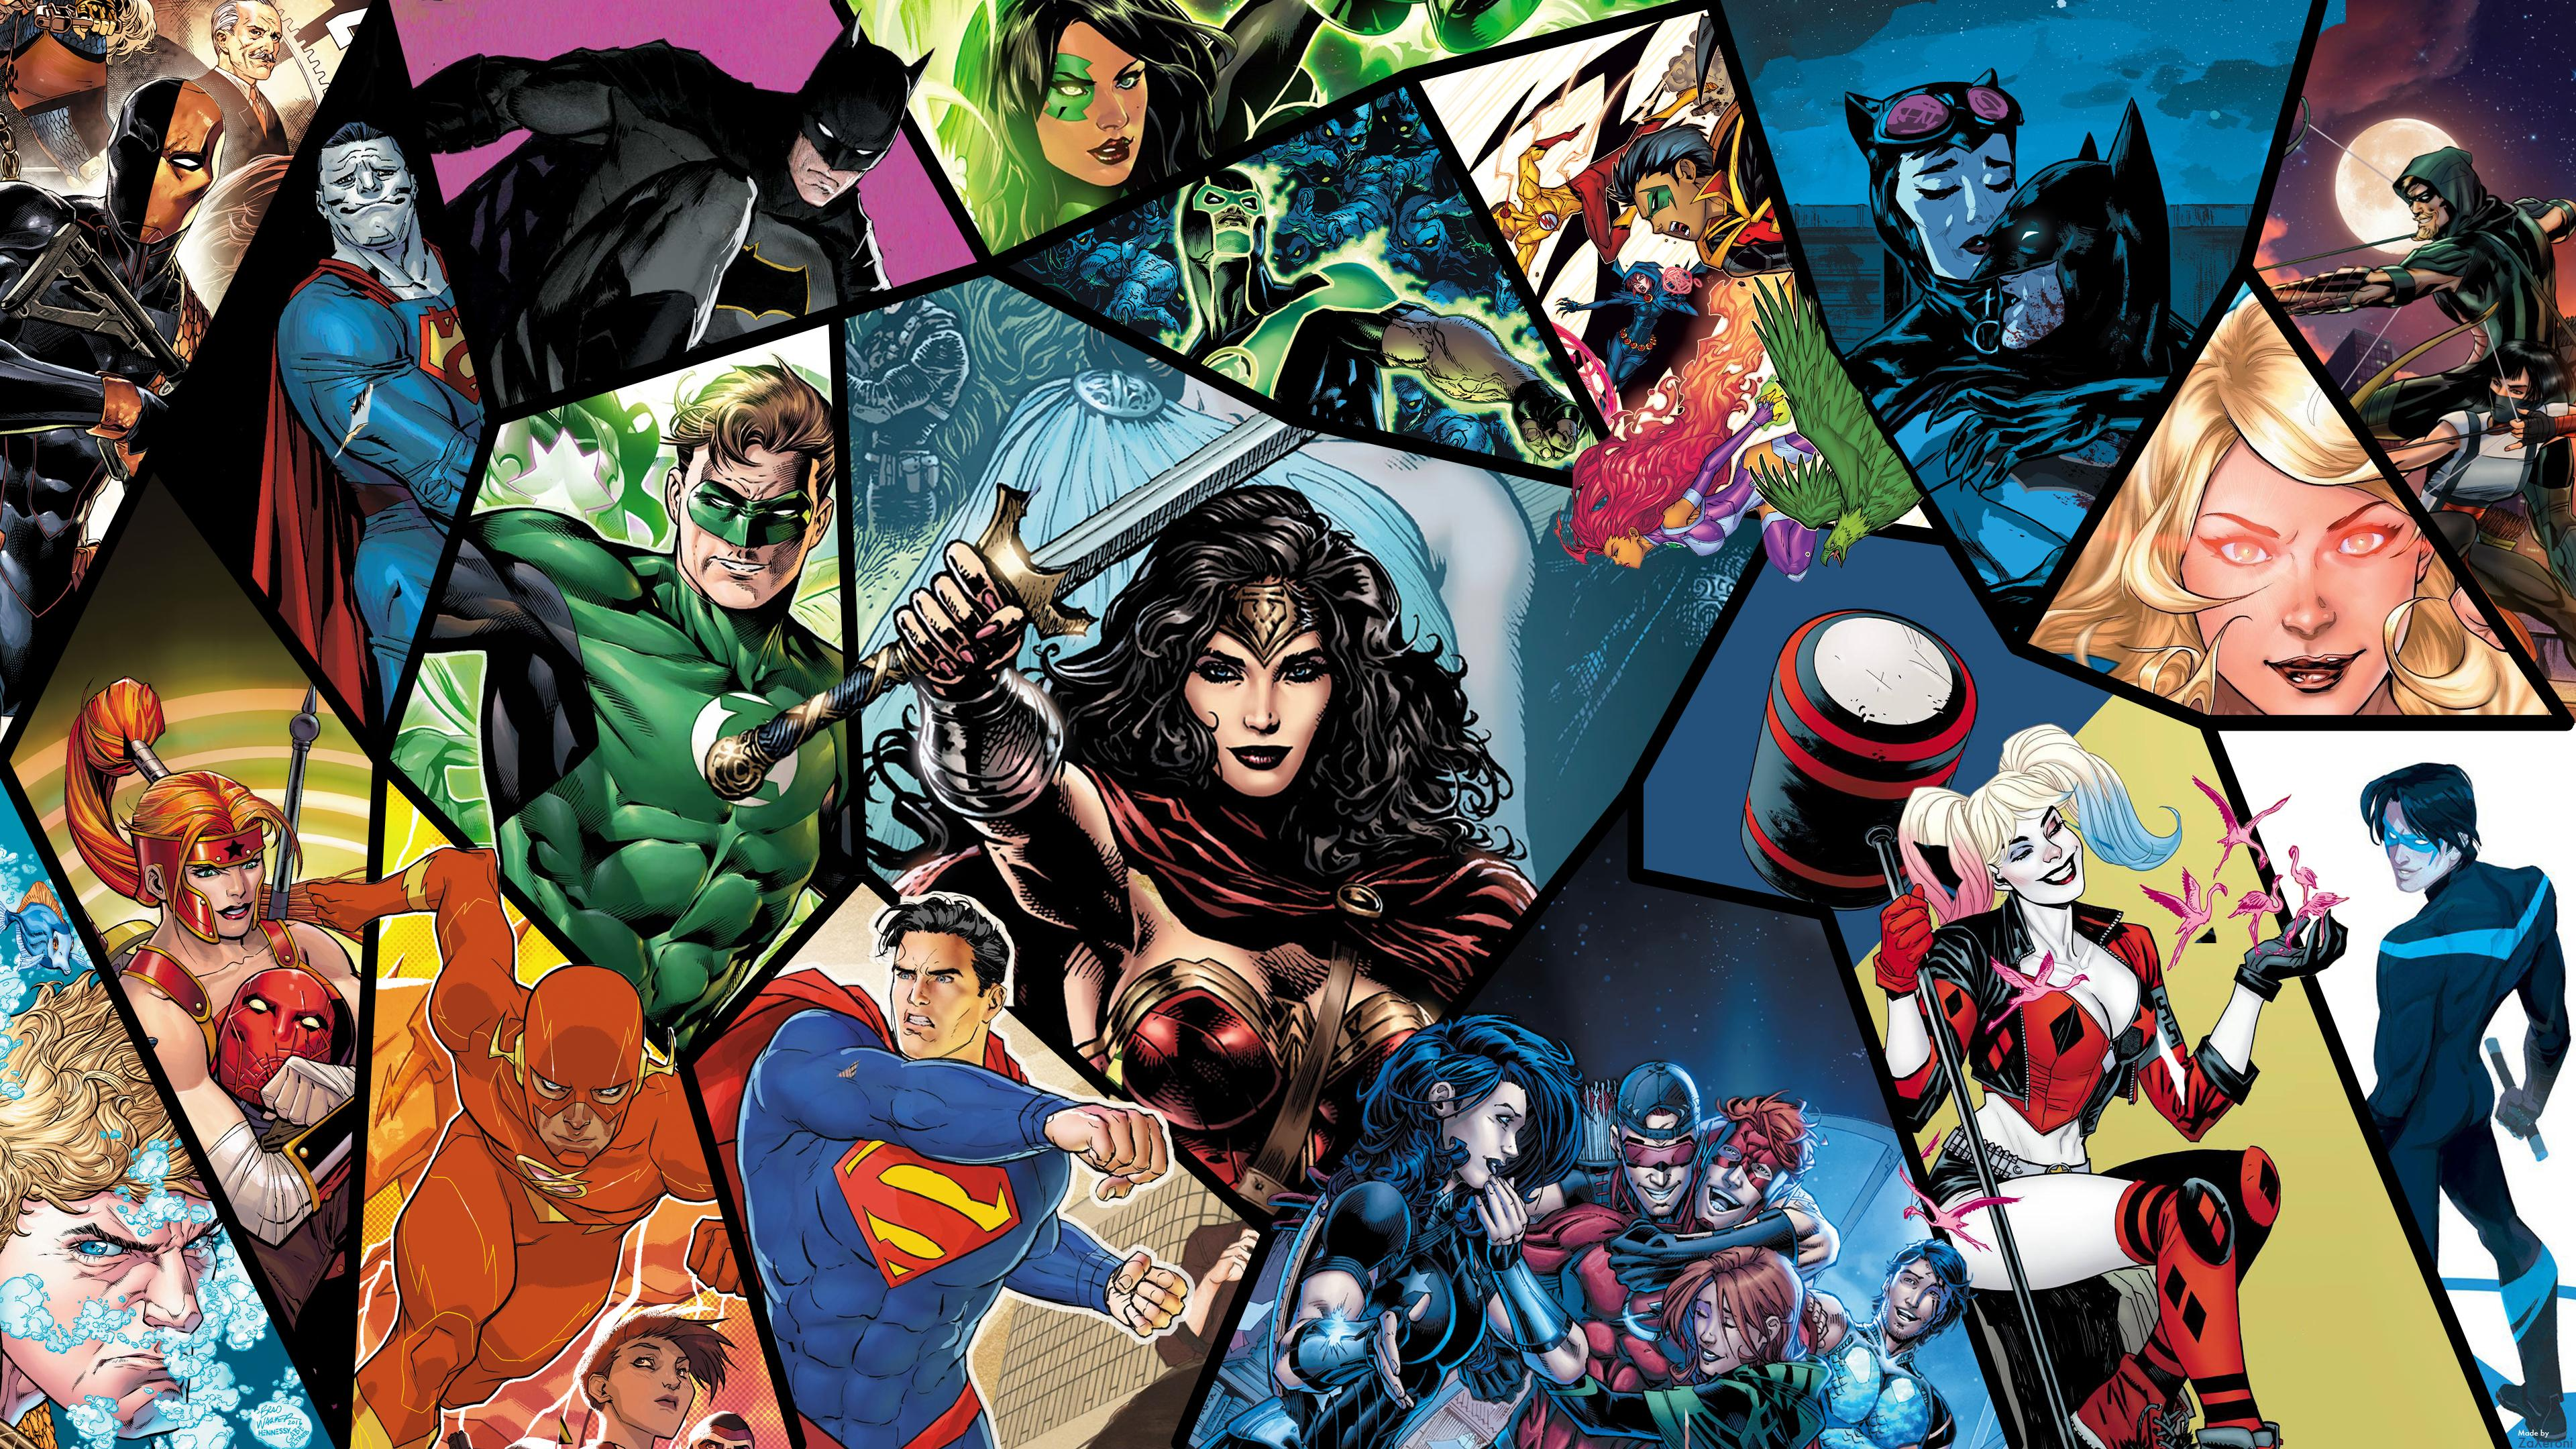 DC Rebirth Wallpaper 3840x2160 DCcomics 3840x2160